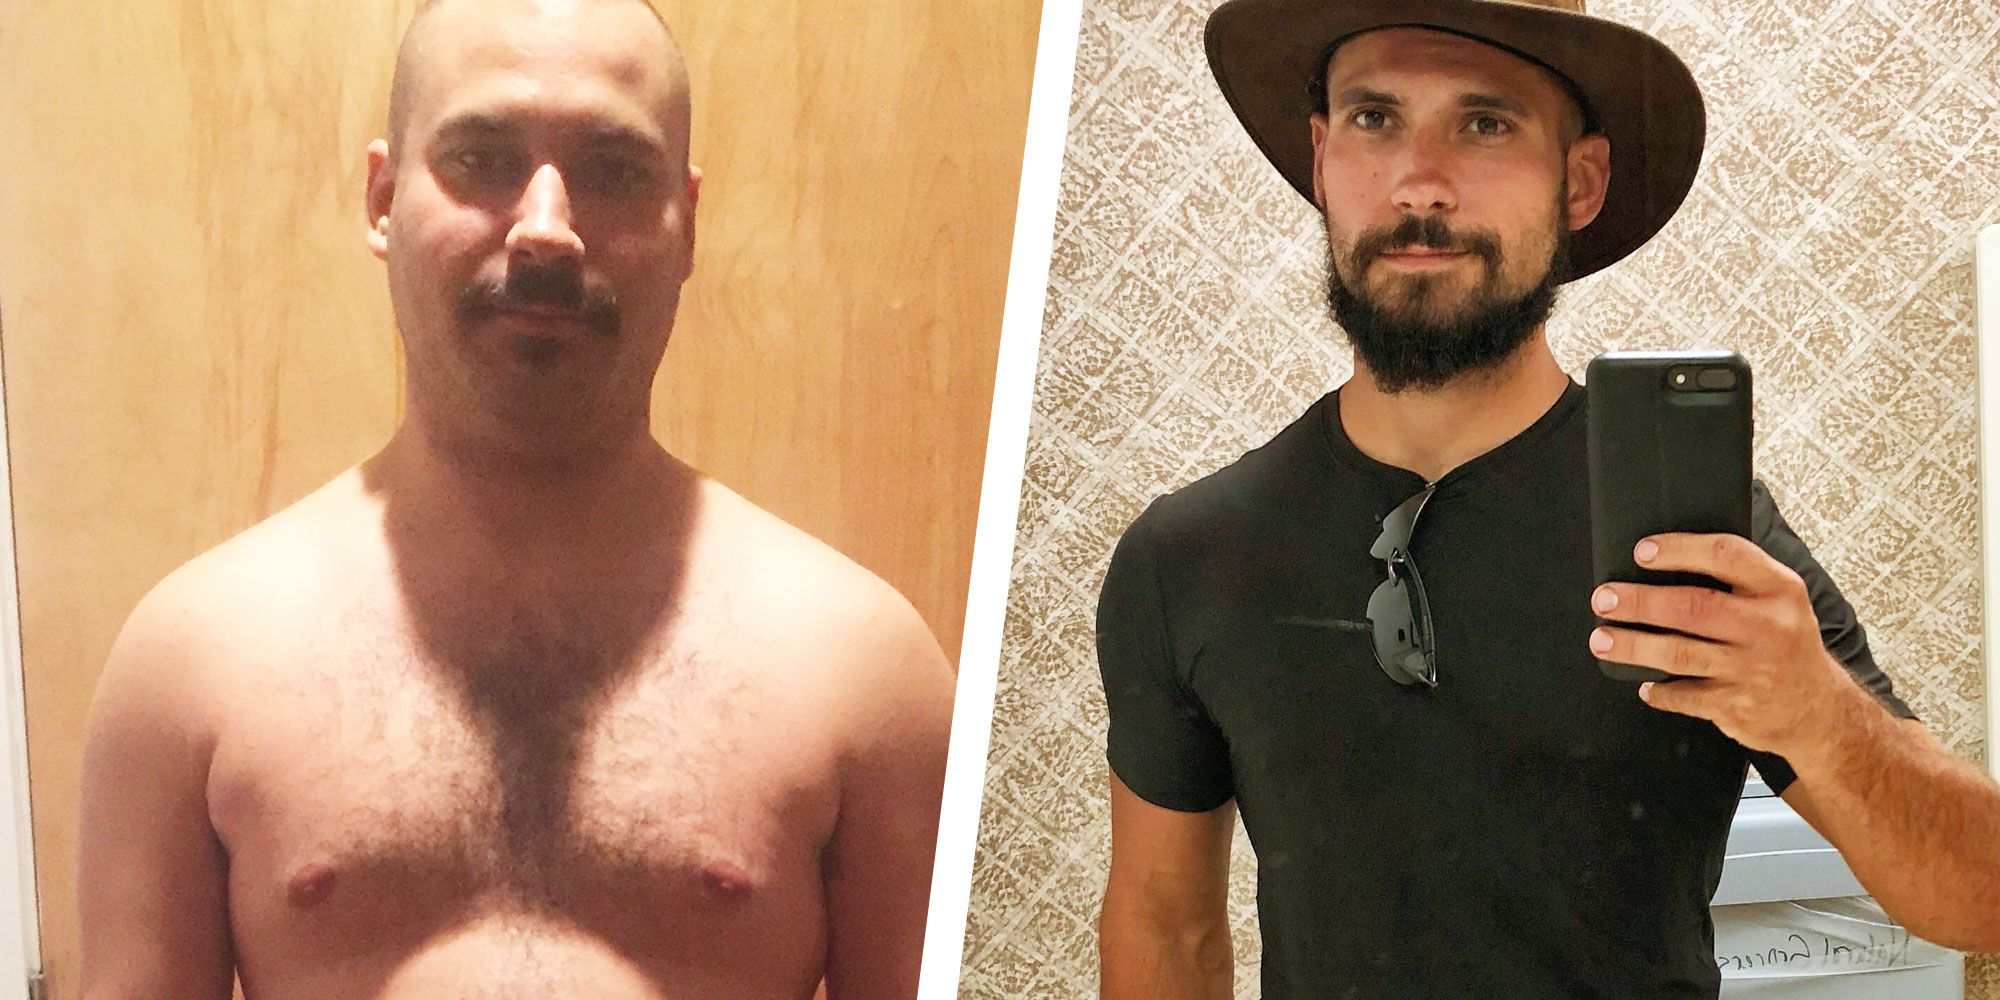 Two Trendy Diets Helped This Guy Lose 60 Pounds and Win a